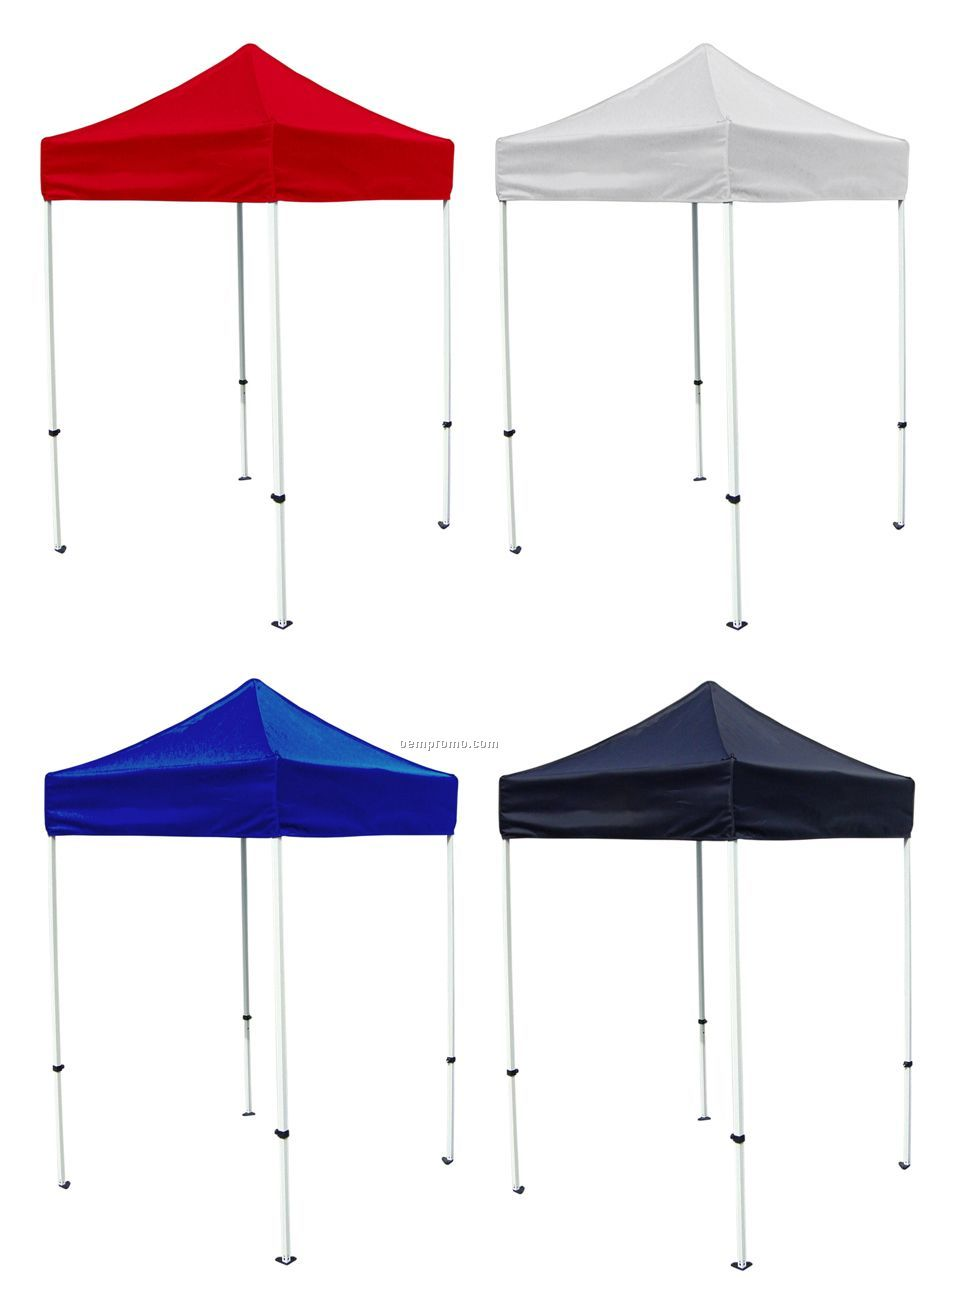 5x5 Pop Up Canopy Tent W/ Steel Frame (No Art)  sc 1 st  Oempromo.com & 5x5 Pop Up Canopy Tent W/ Steel Frame (No Art)China Wholesale 5x5 ...